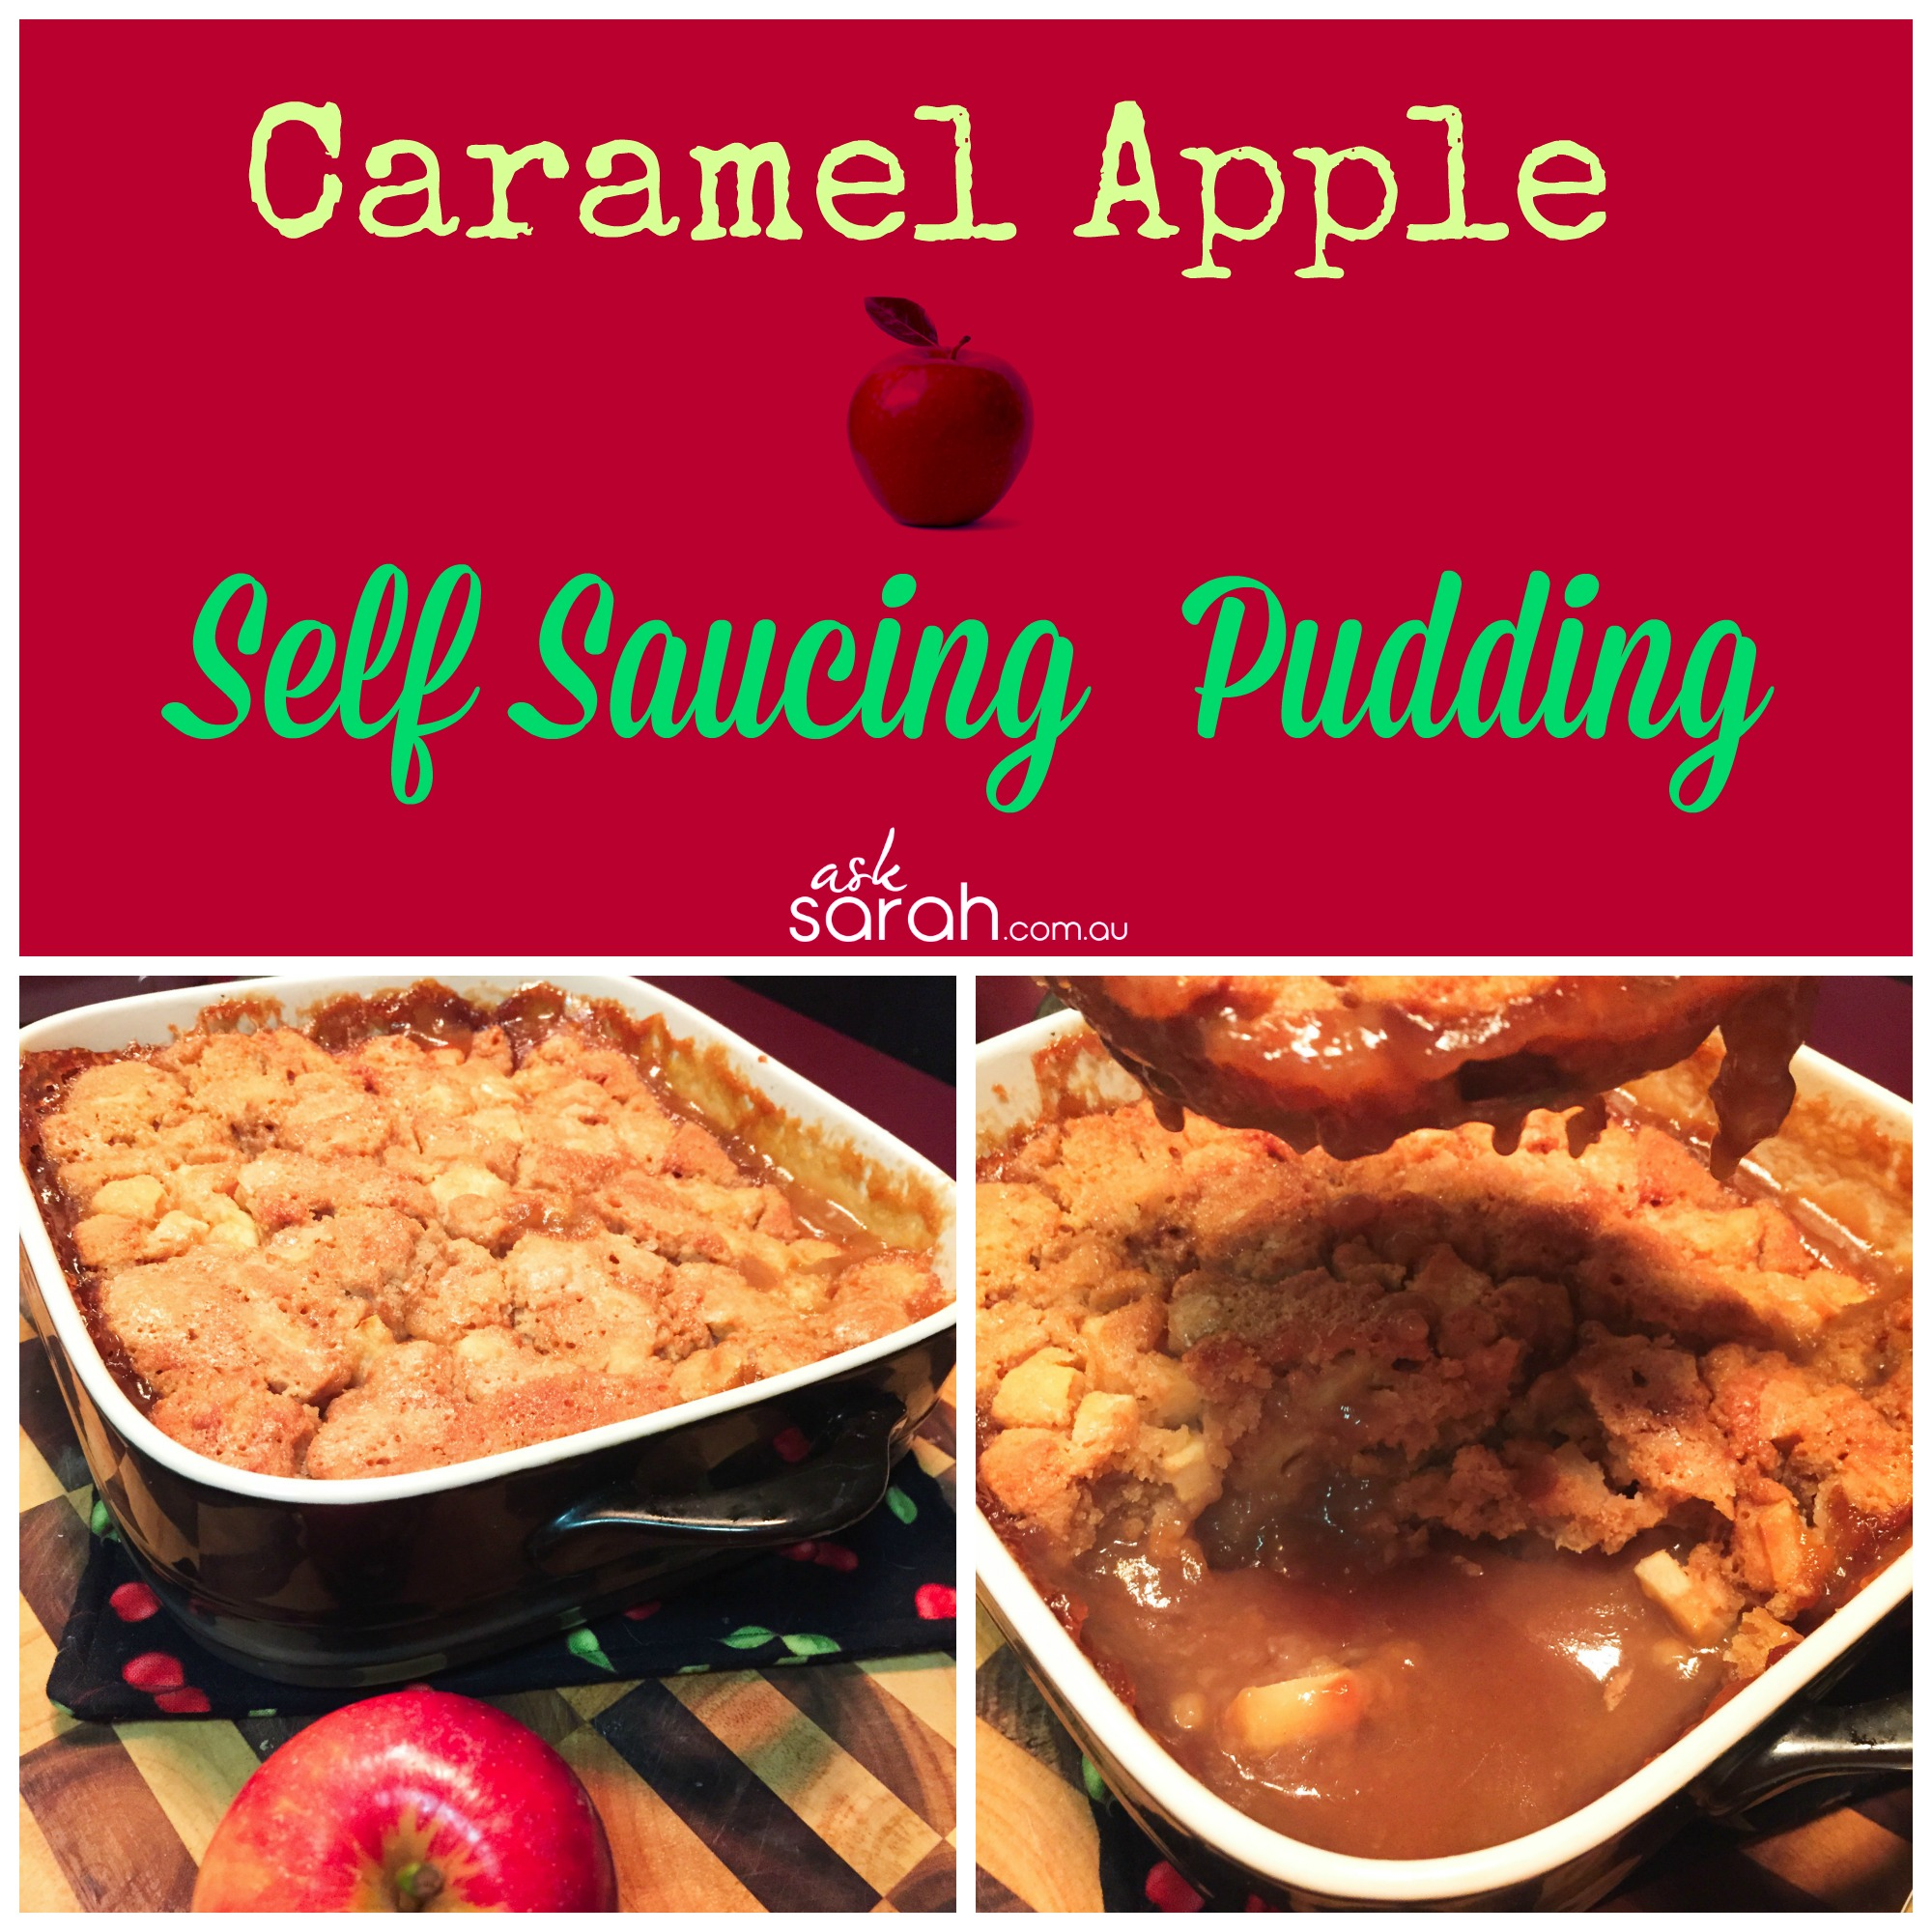 Recipe: Caramel Apple Self Saucing Pudding {So Easy And